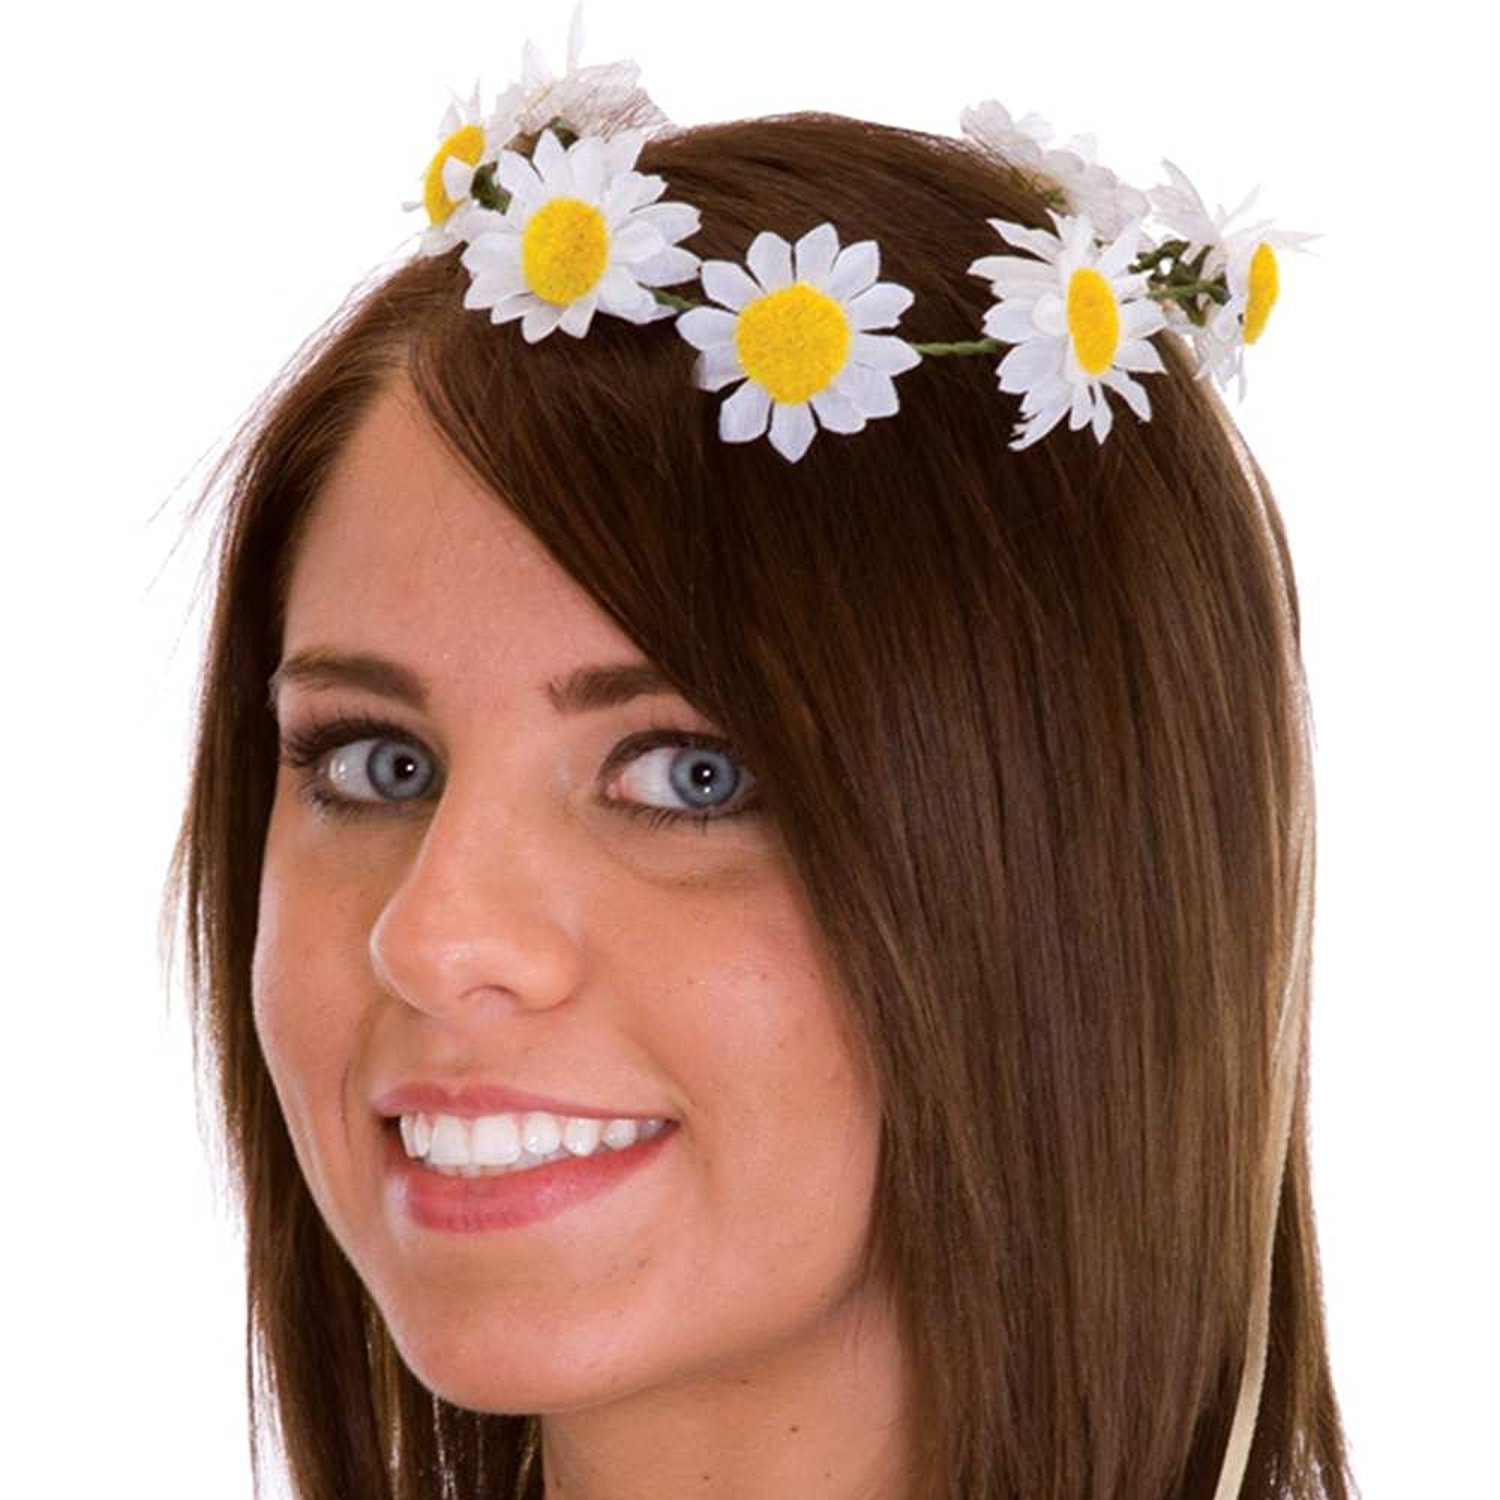 Cheap Daisy Flower Costume Find Daisy Flower Costume Deals On Line